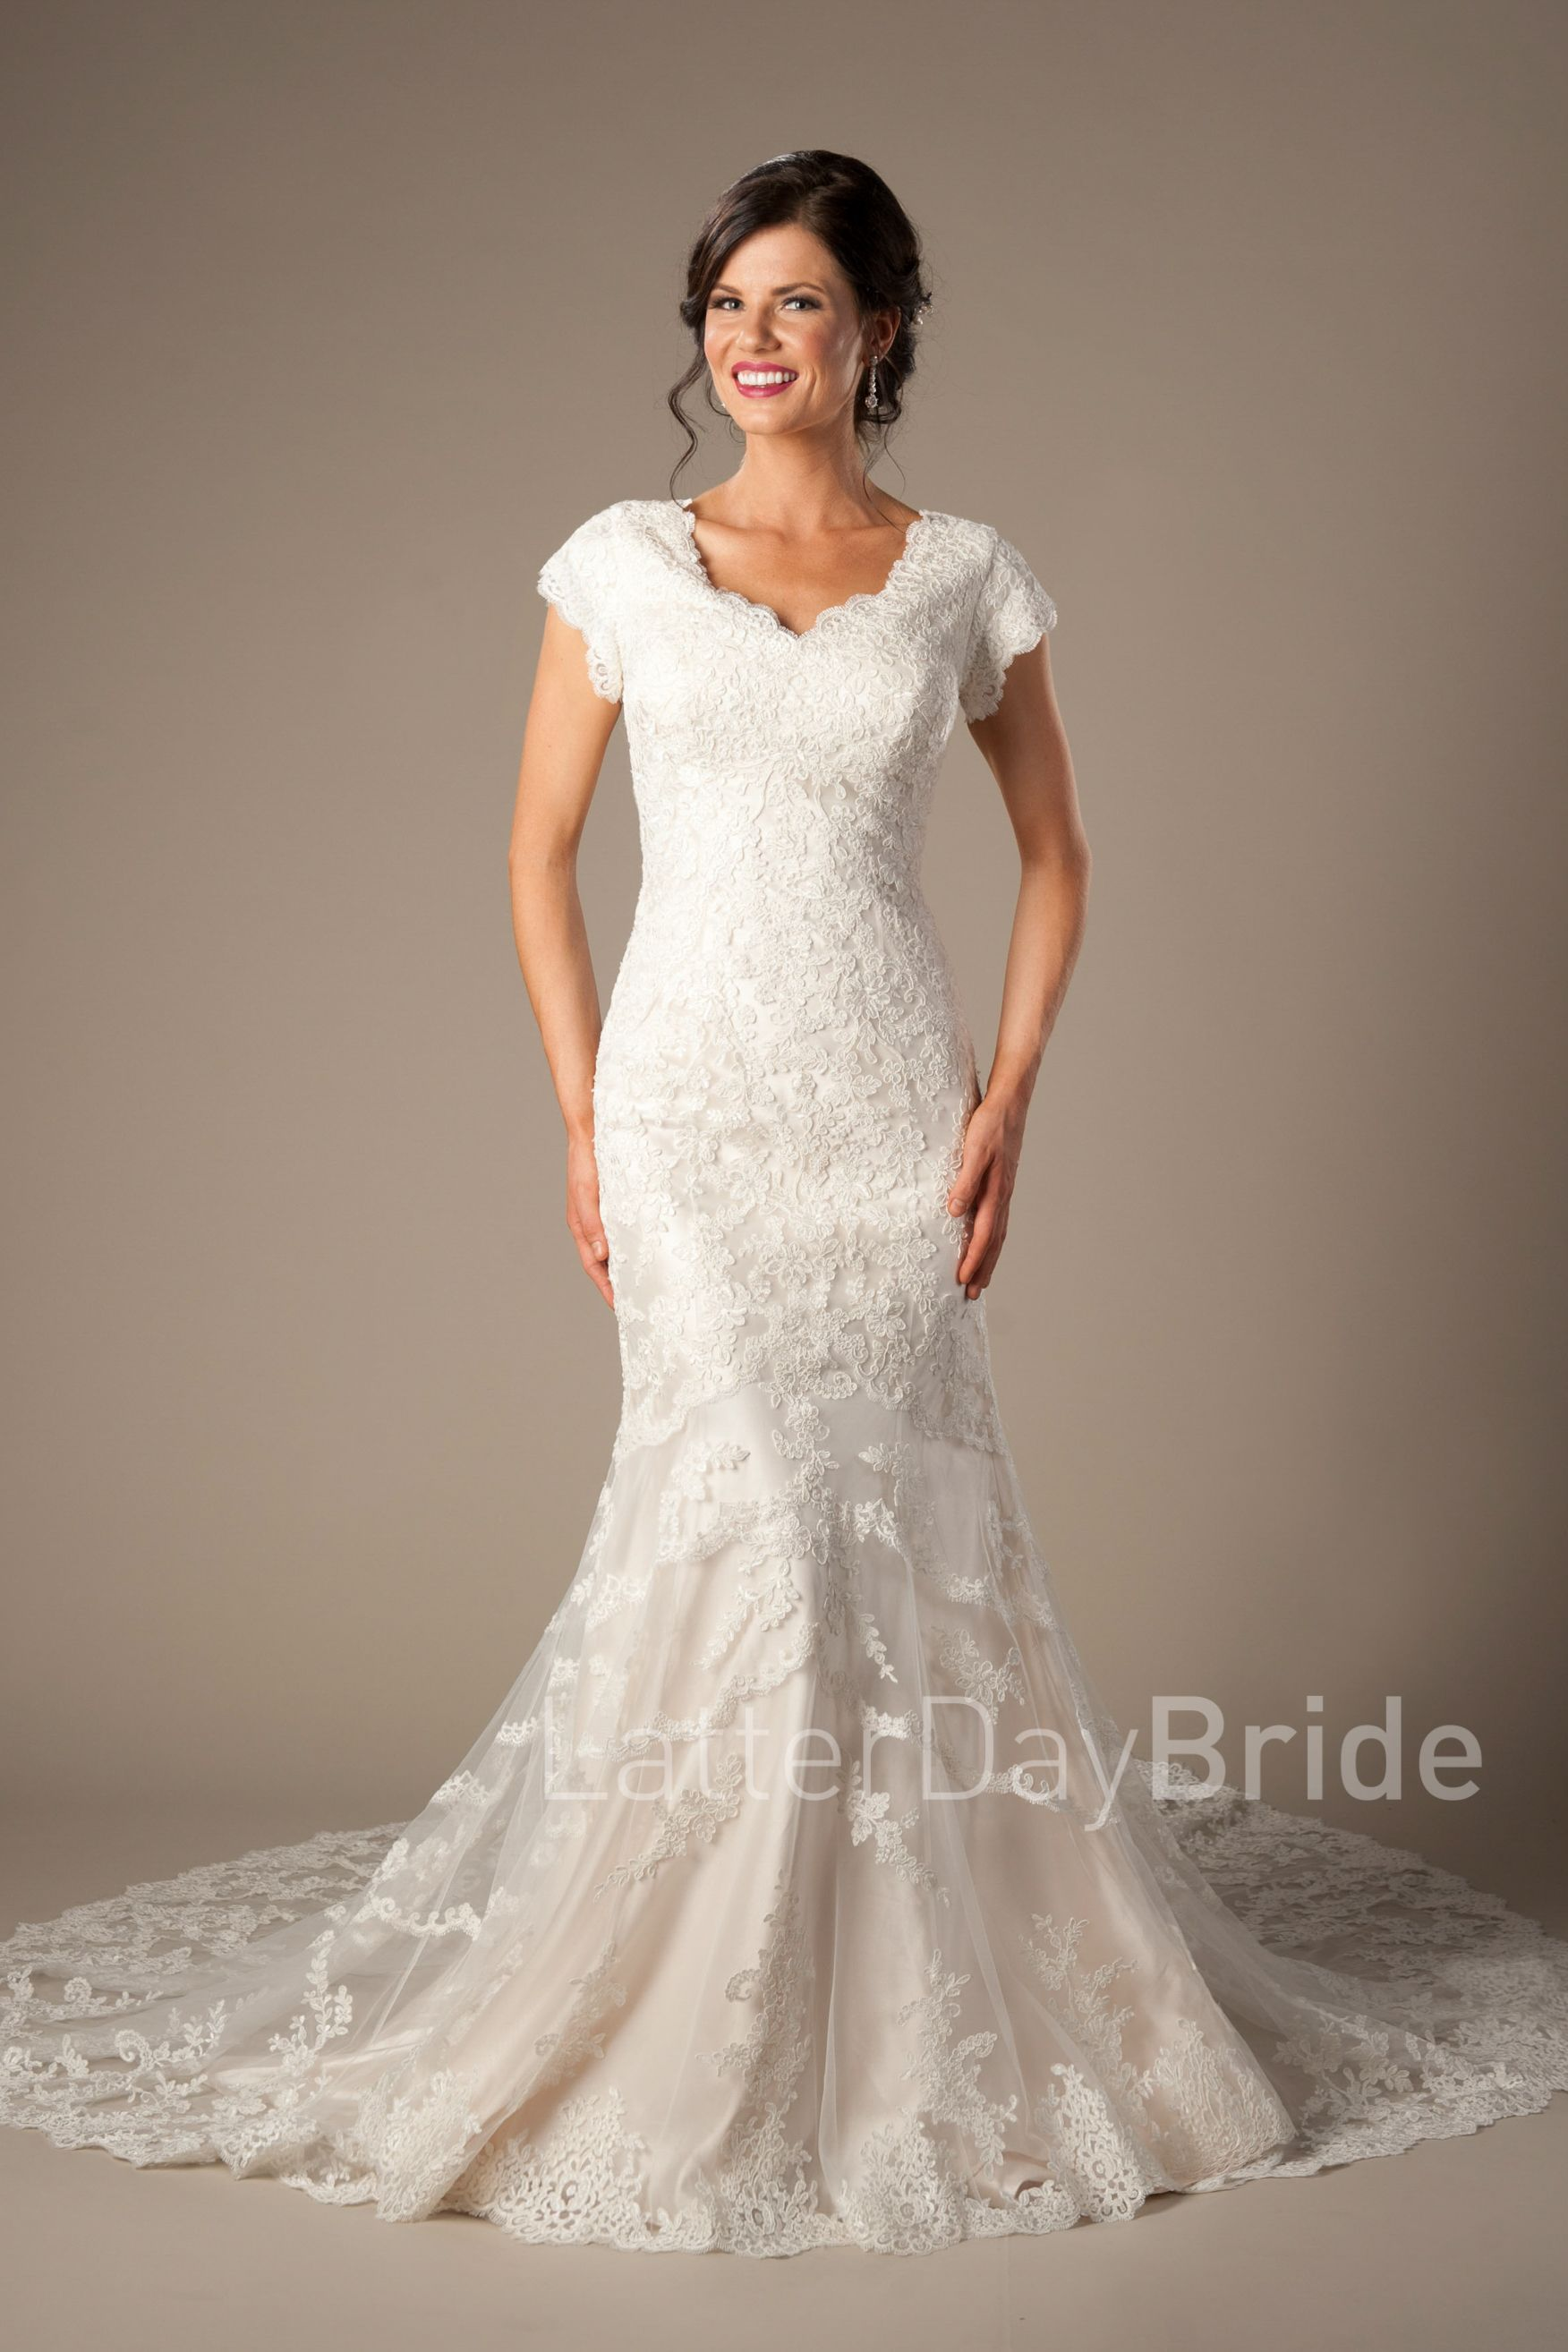 Best affordable wedding dress shops london  Modest lds Wedding dress with lace  later day bride  Pinterest